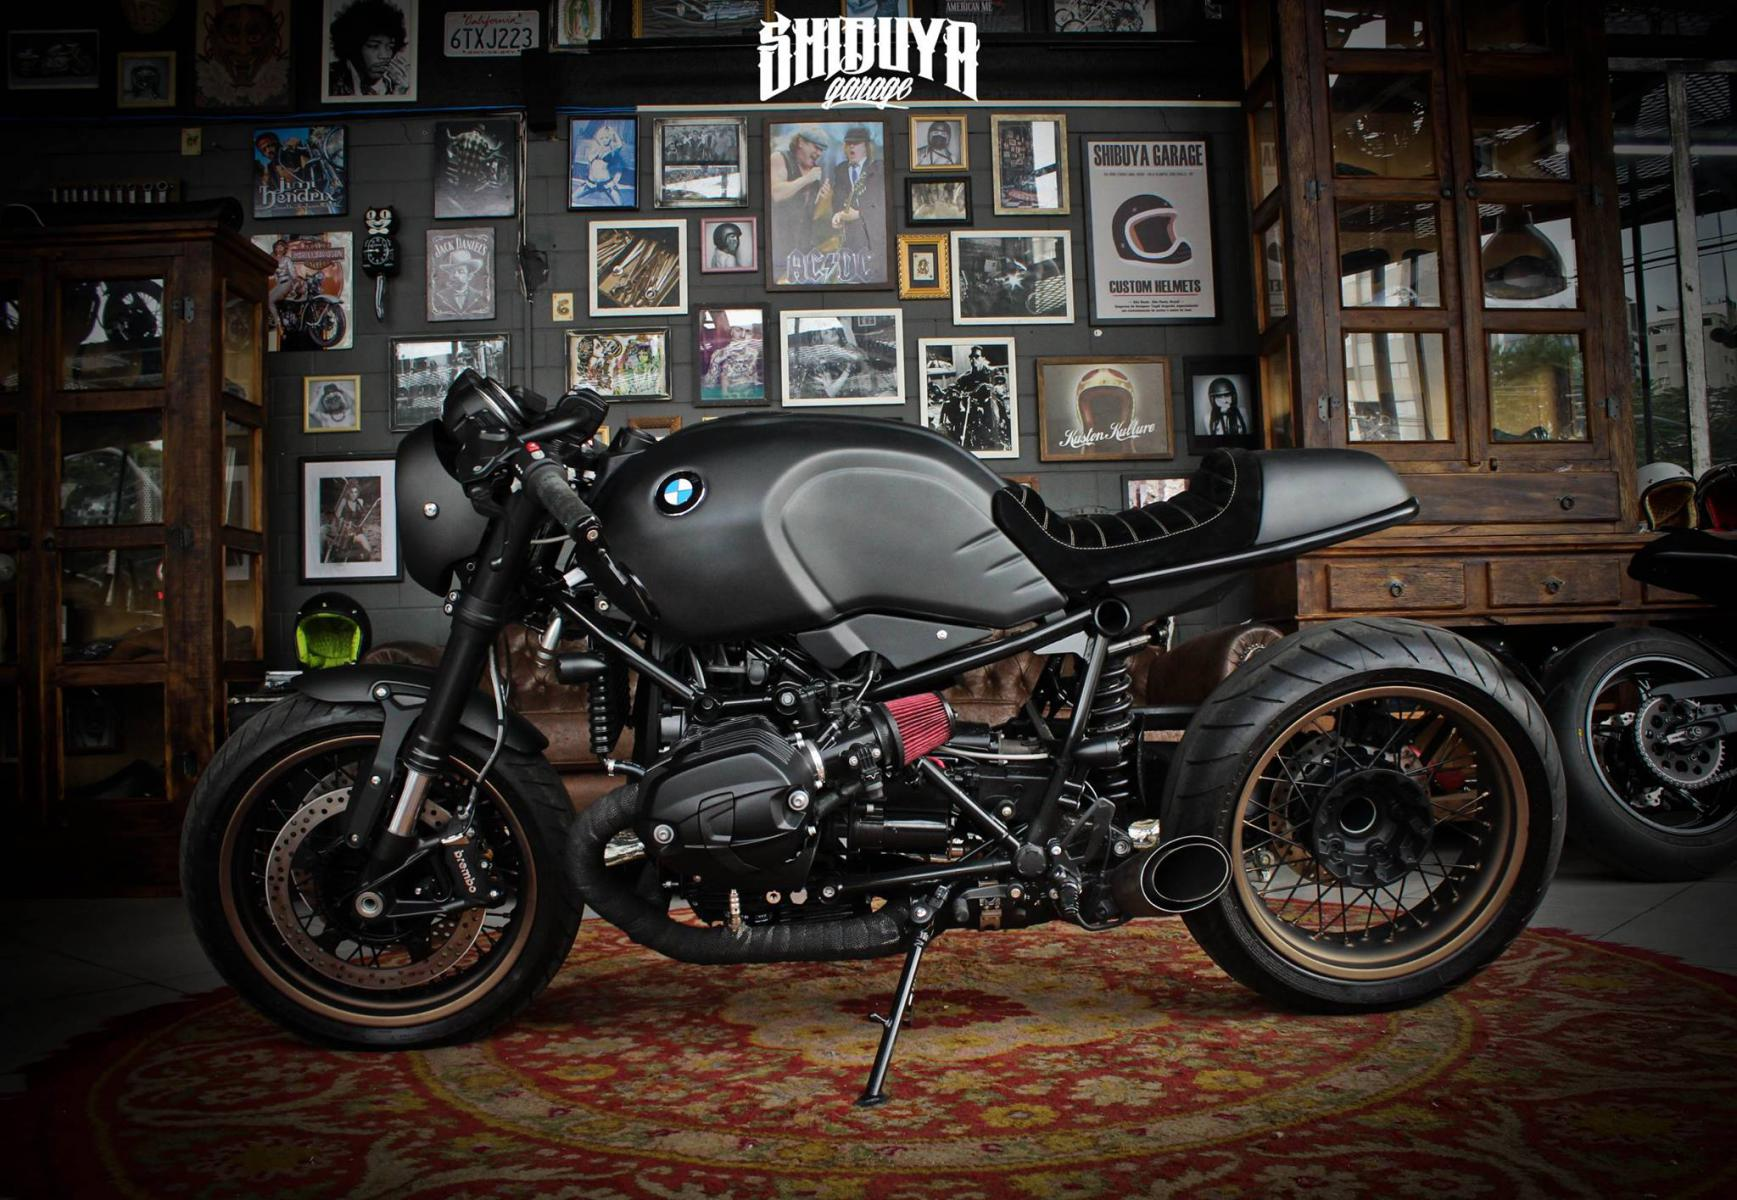 49777d1452164016-shibuya-garage-style-short-exhaust-bmw-ninet-shibuya-garage Exciting Bmw R 1200 Cl forum Cars Trend